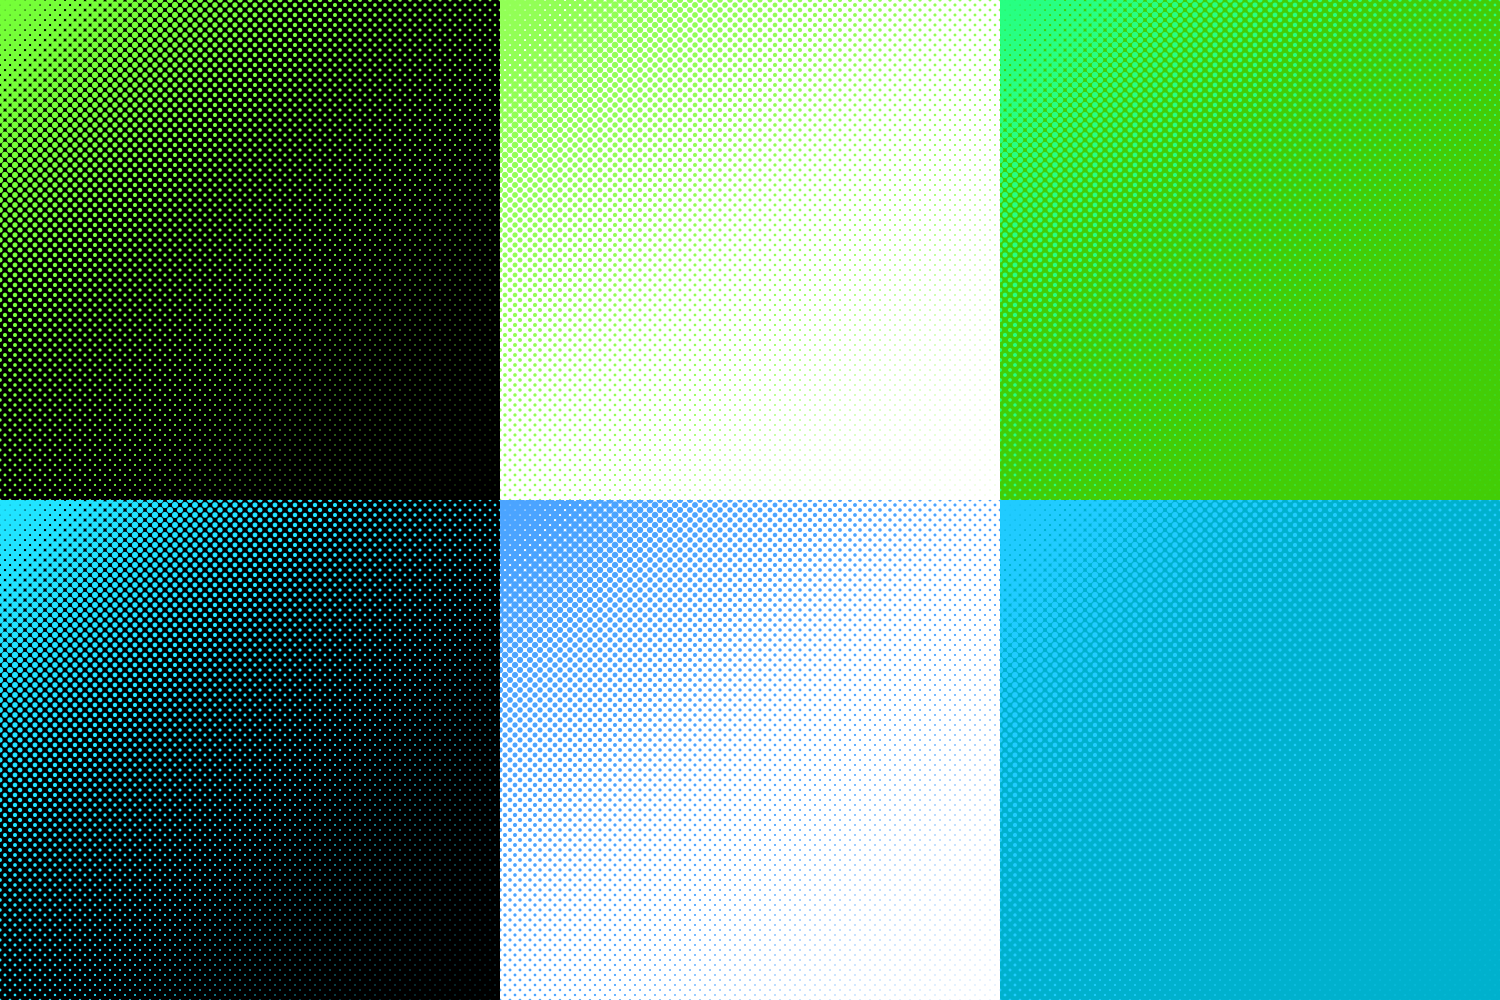 30 Halftone Circle Backgrounds (AI, EPS, JPG 5000x5000) example image 5